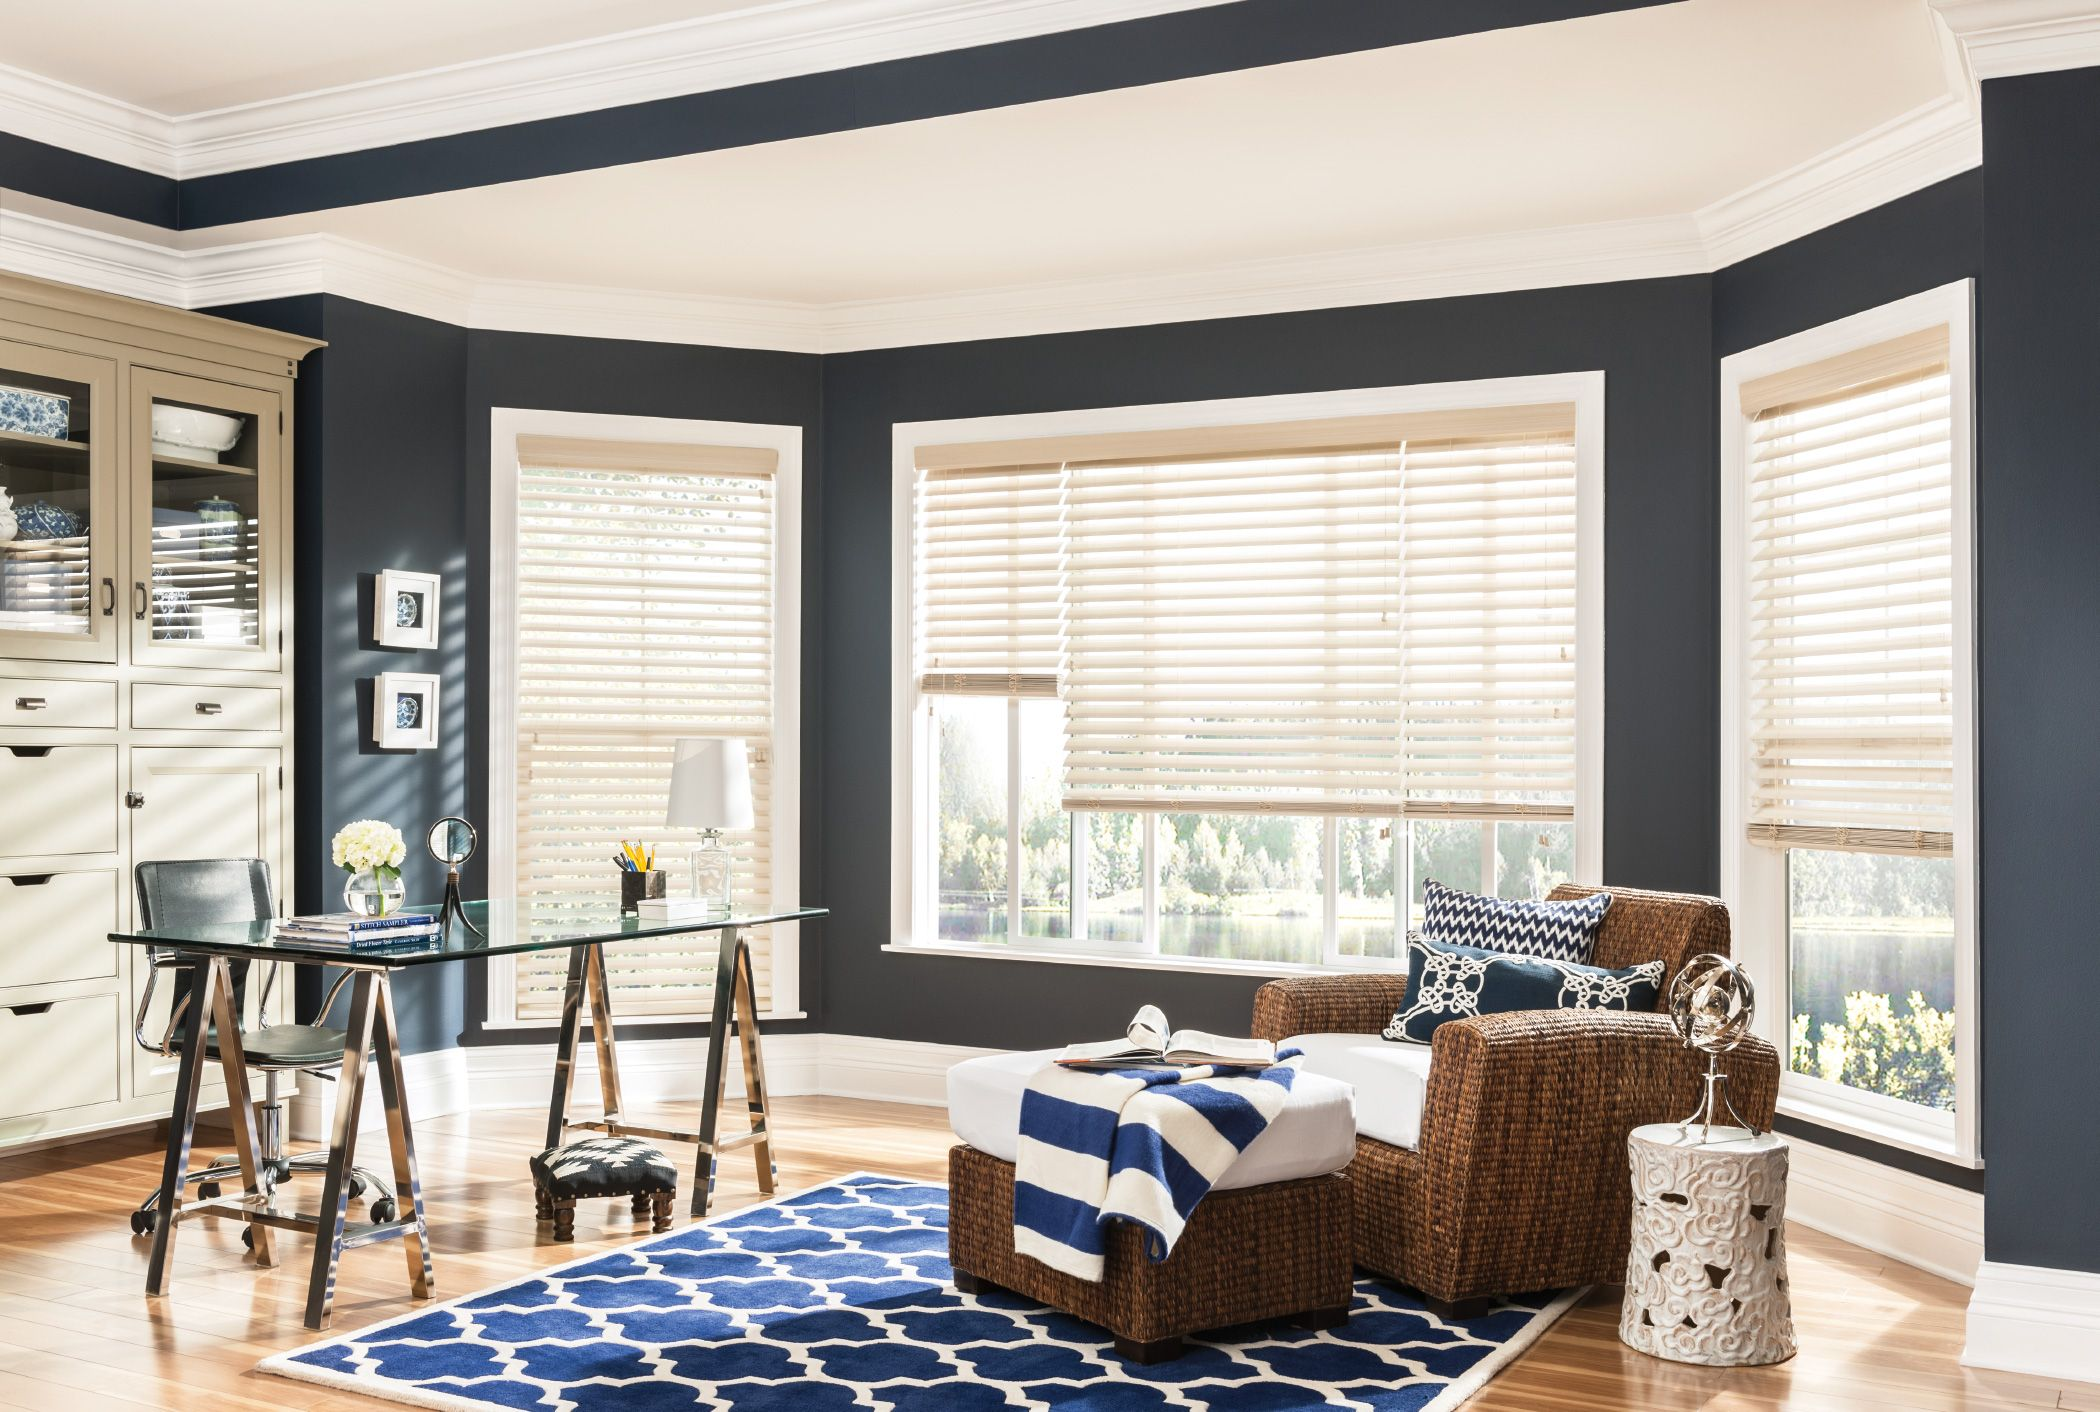 Bali Shades And Blinds Faux Wood Blinds Bay Window Blinds Faux Wood Blinds Blinds For Windows